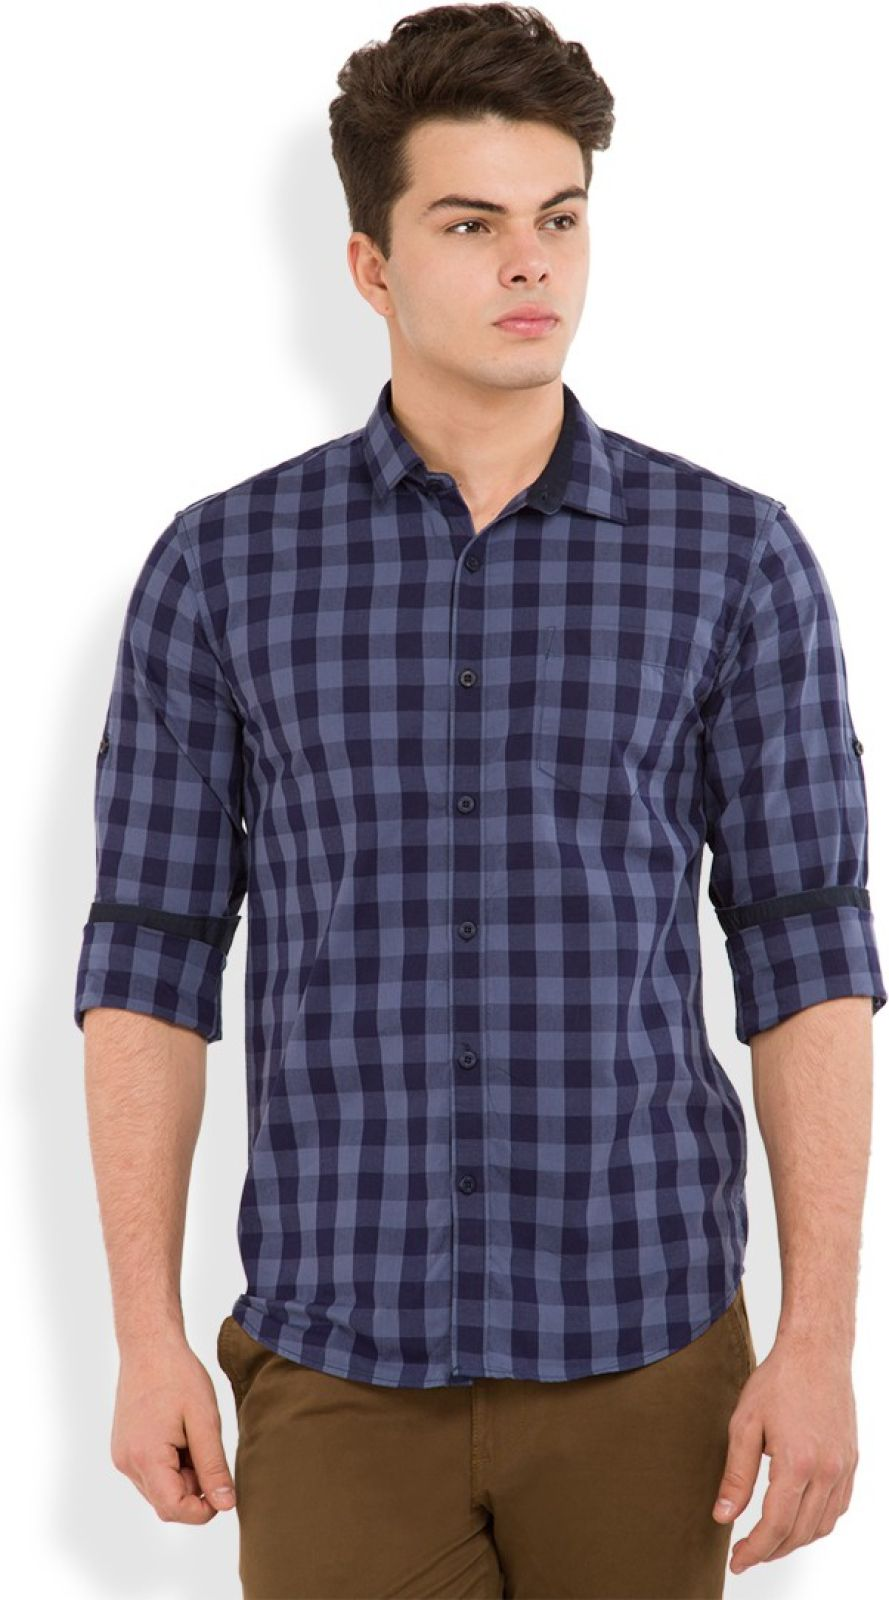 Highlander Mens Checkered Casual Regular Shirt